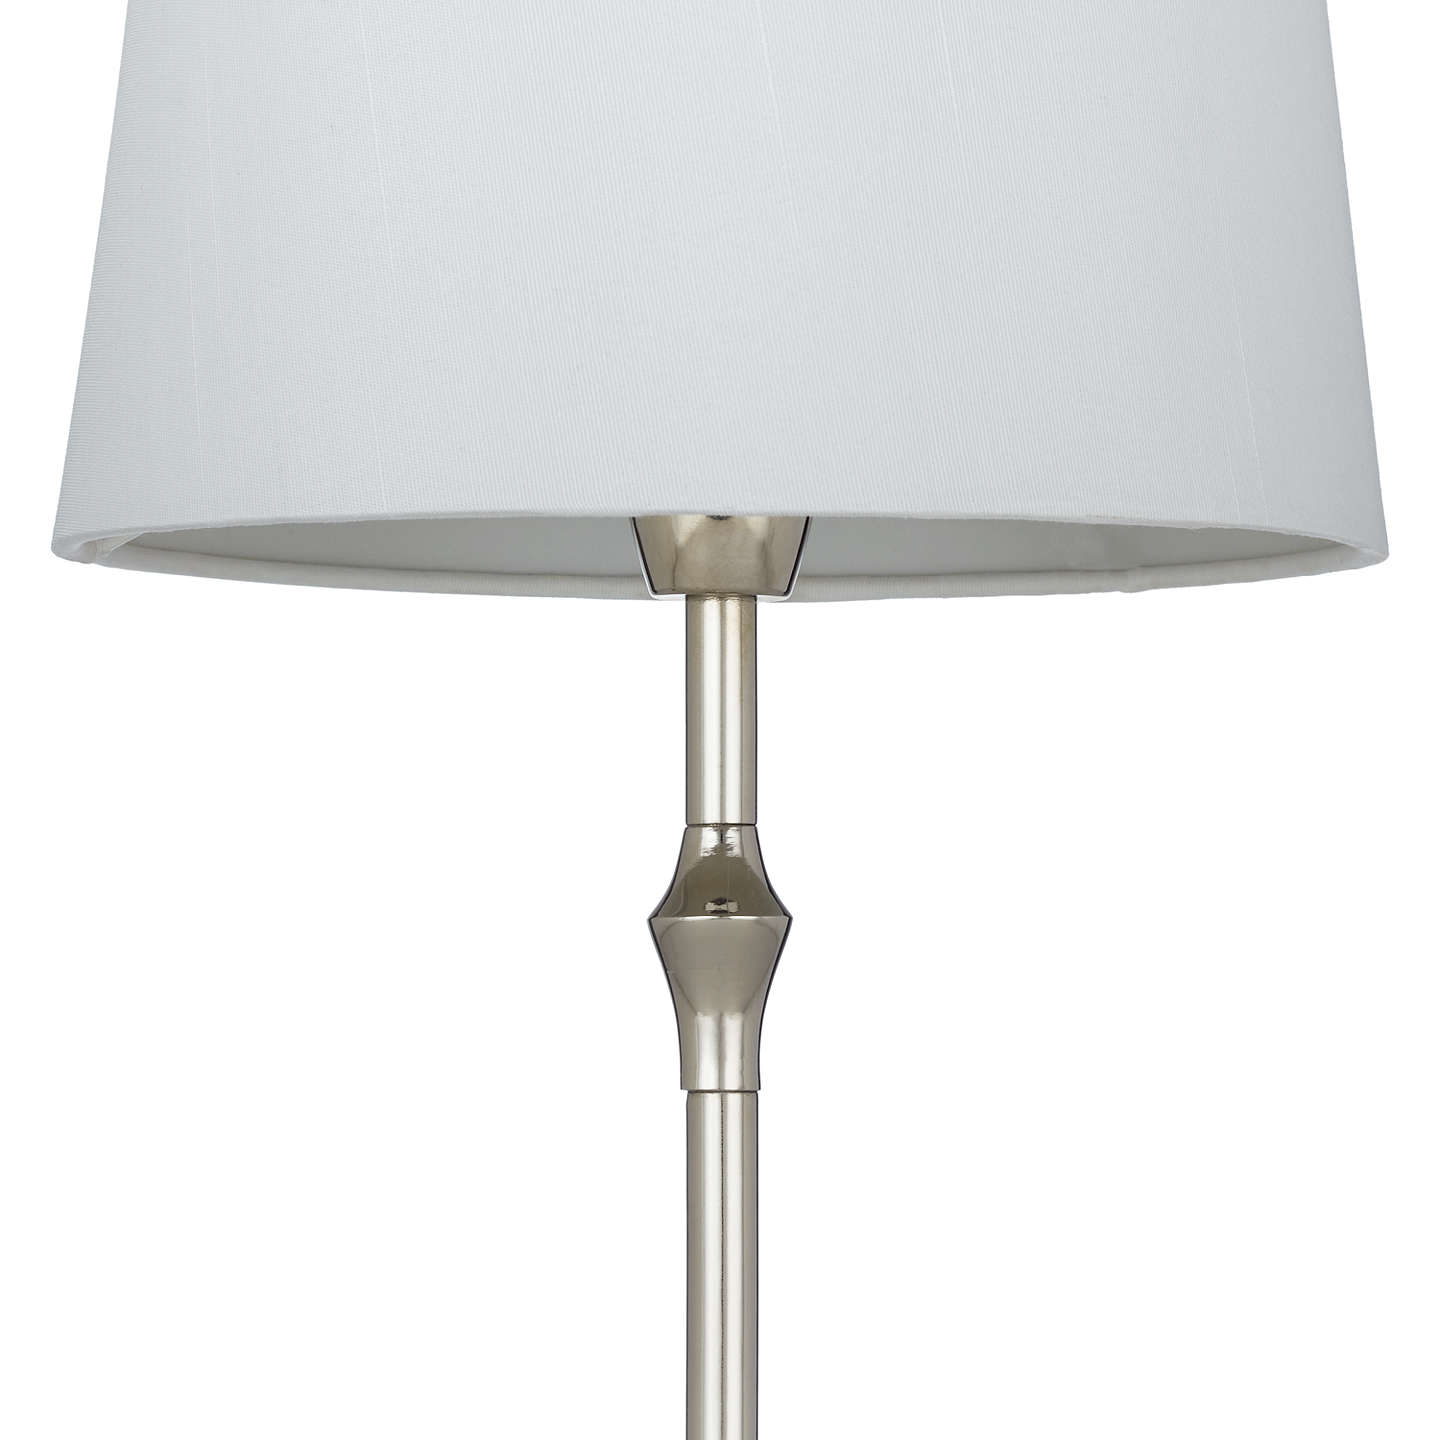 BuyJohn Lewis Cleo Turned Candlestick Table Lamp, Nickel Online at johnlewis.com